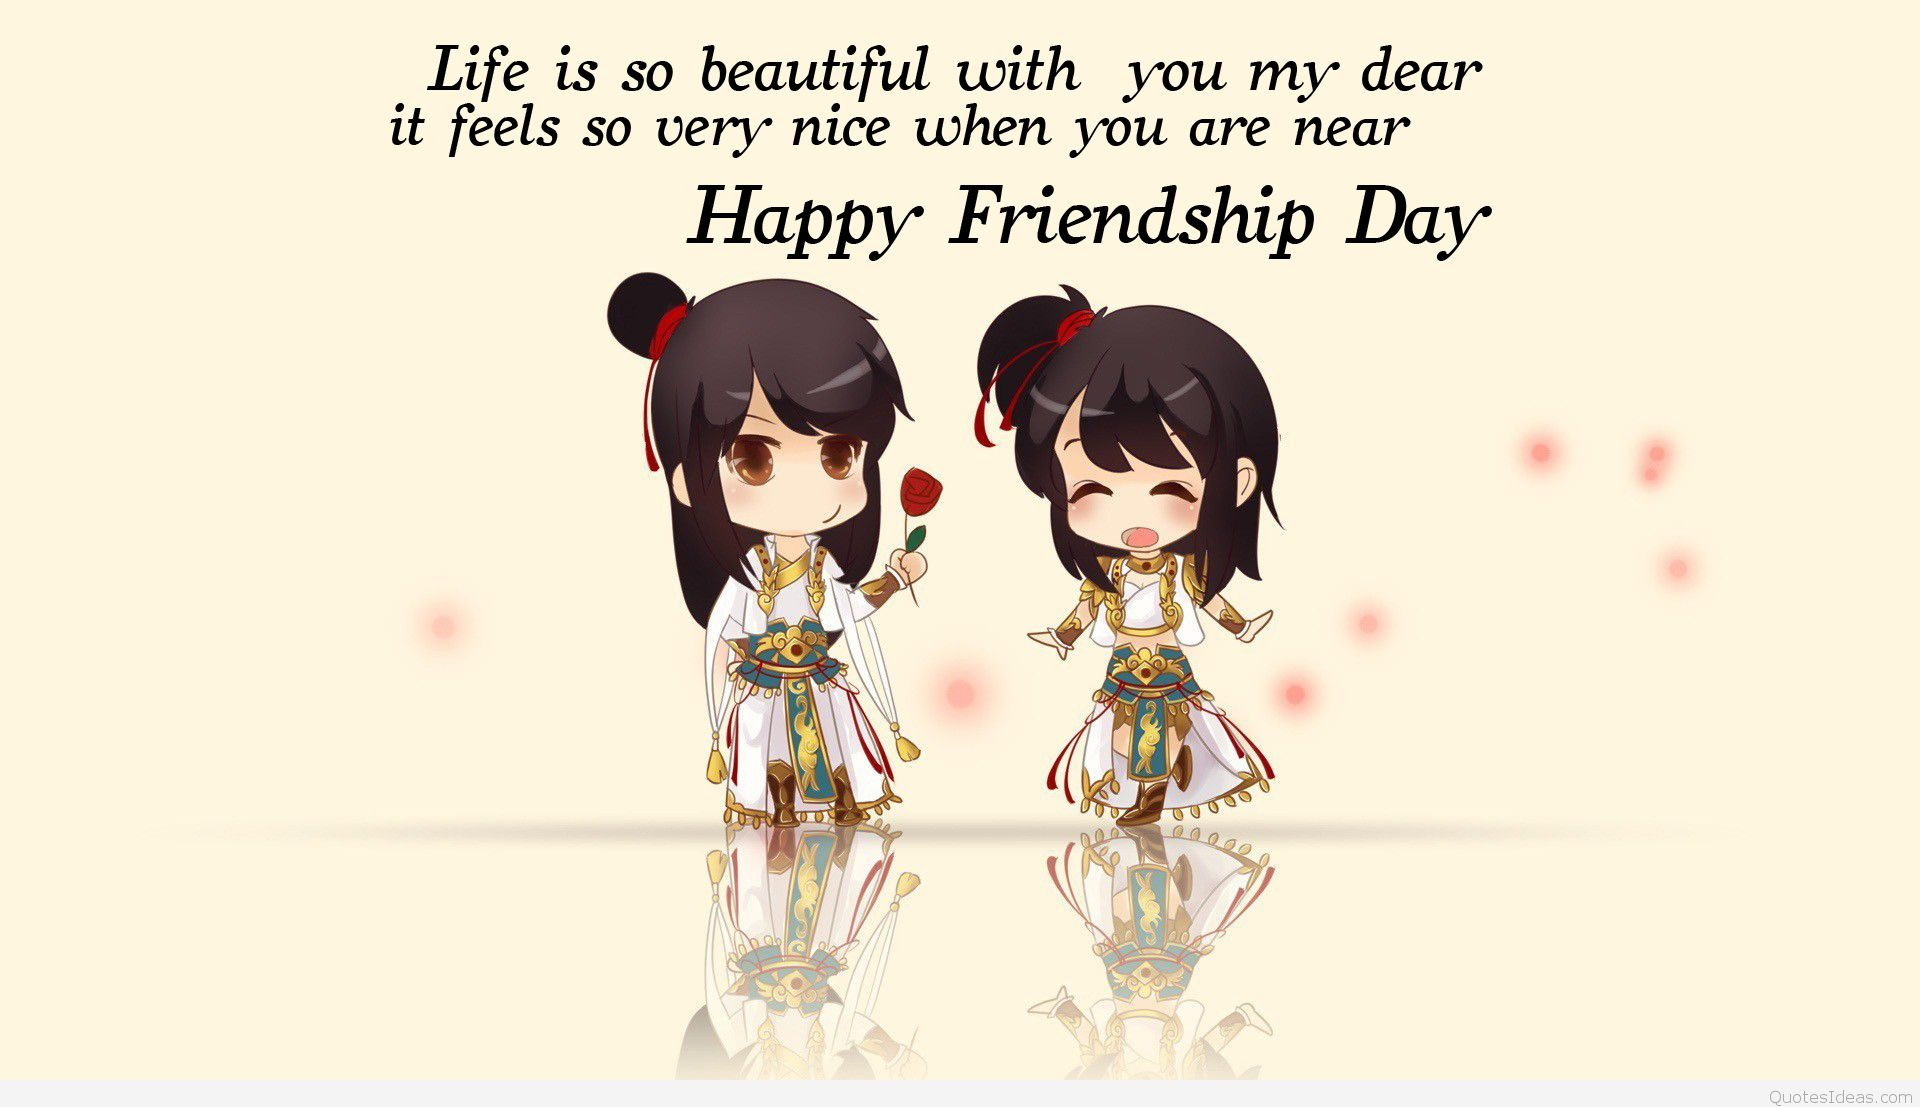 Happy-Friendship-day-images-2016